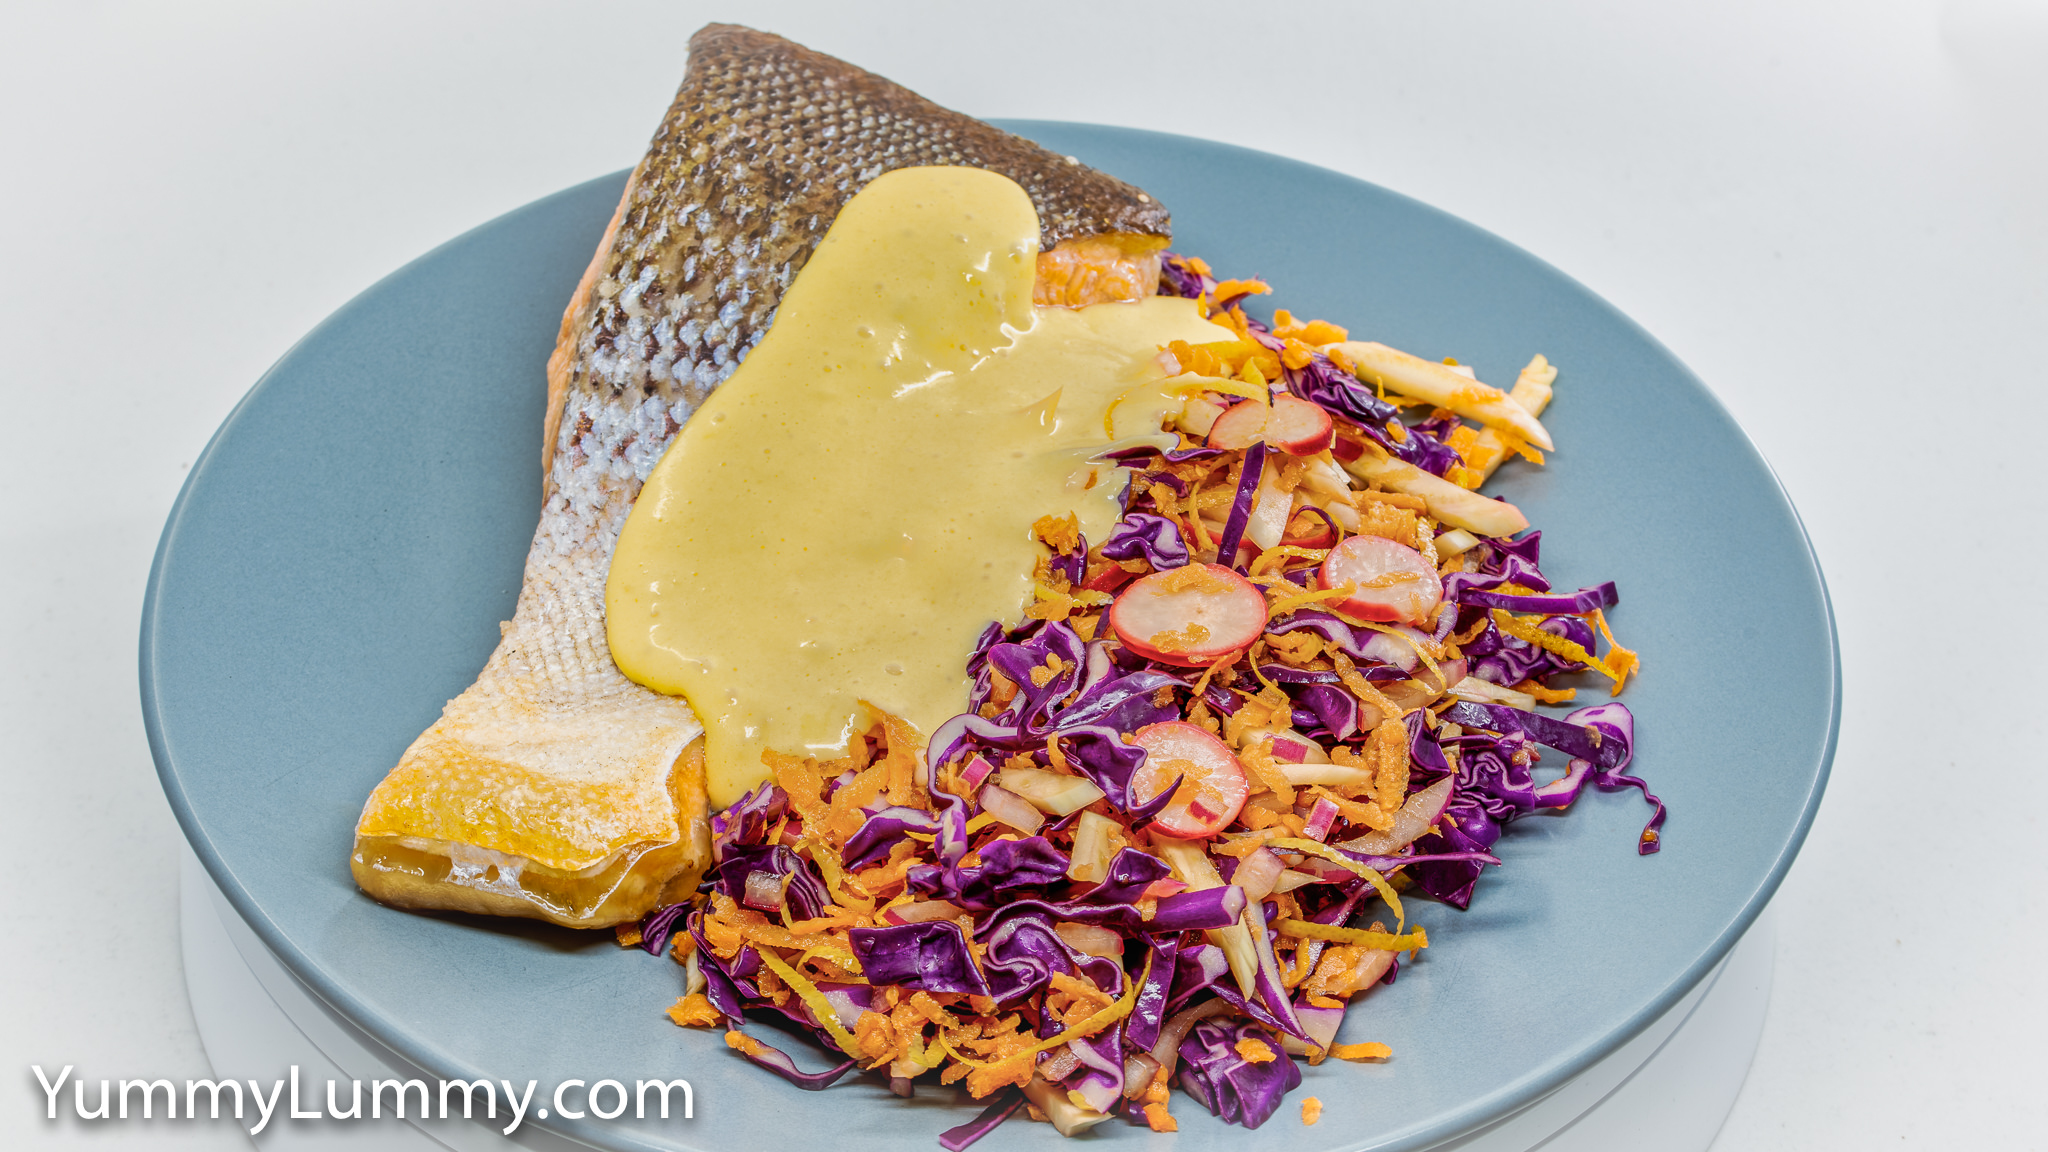 Baked salmon, red cabbage slaw with pickled fennel, radish, and red onion, and Hollandaise sauce. Gary Lum.